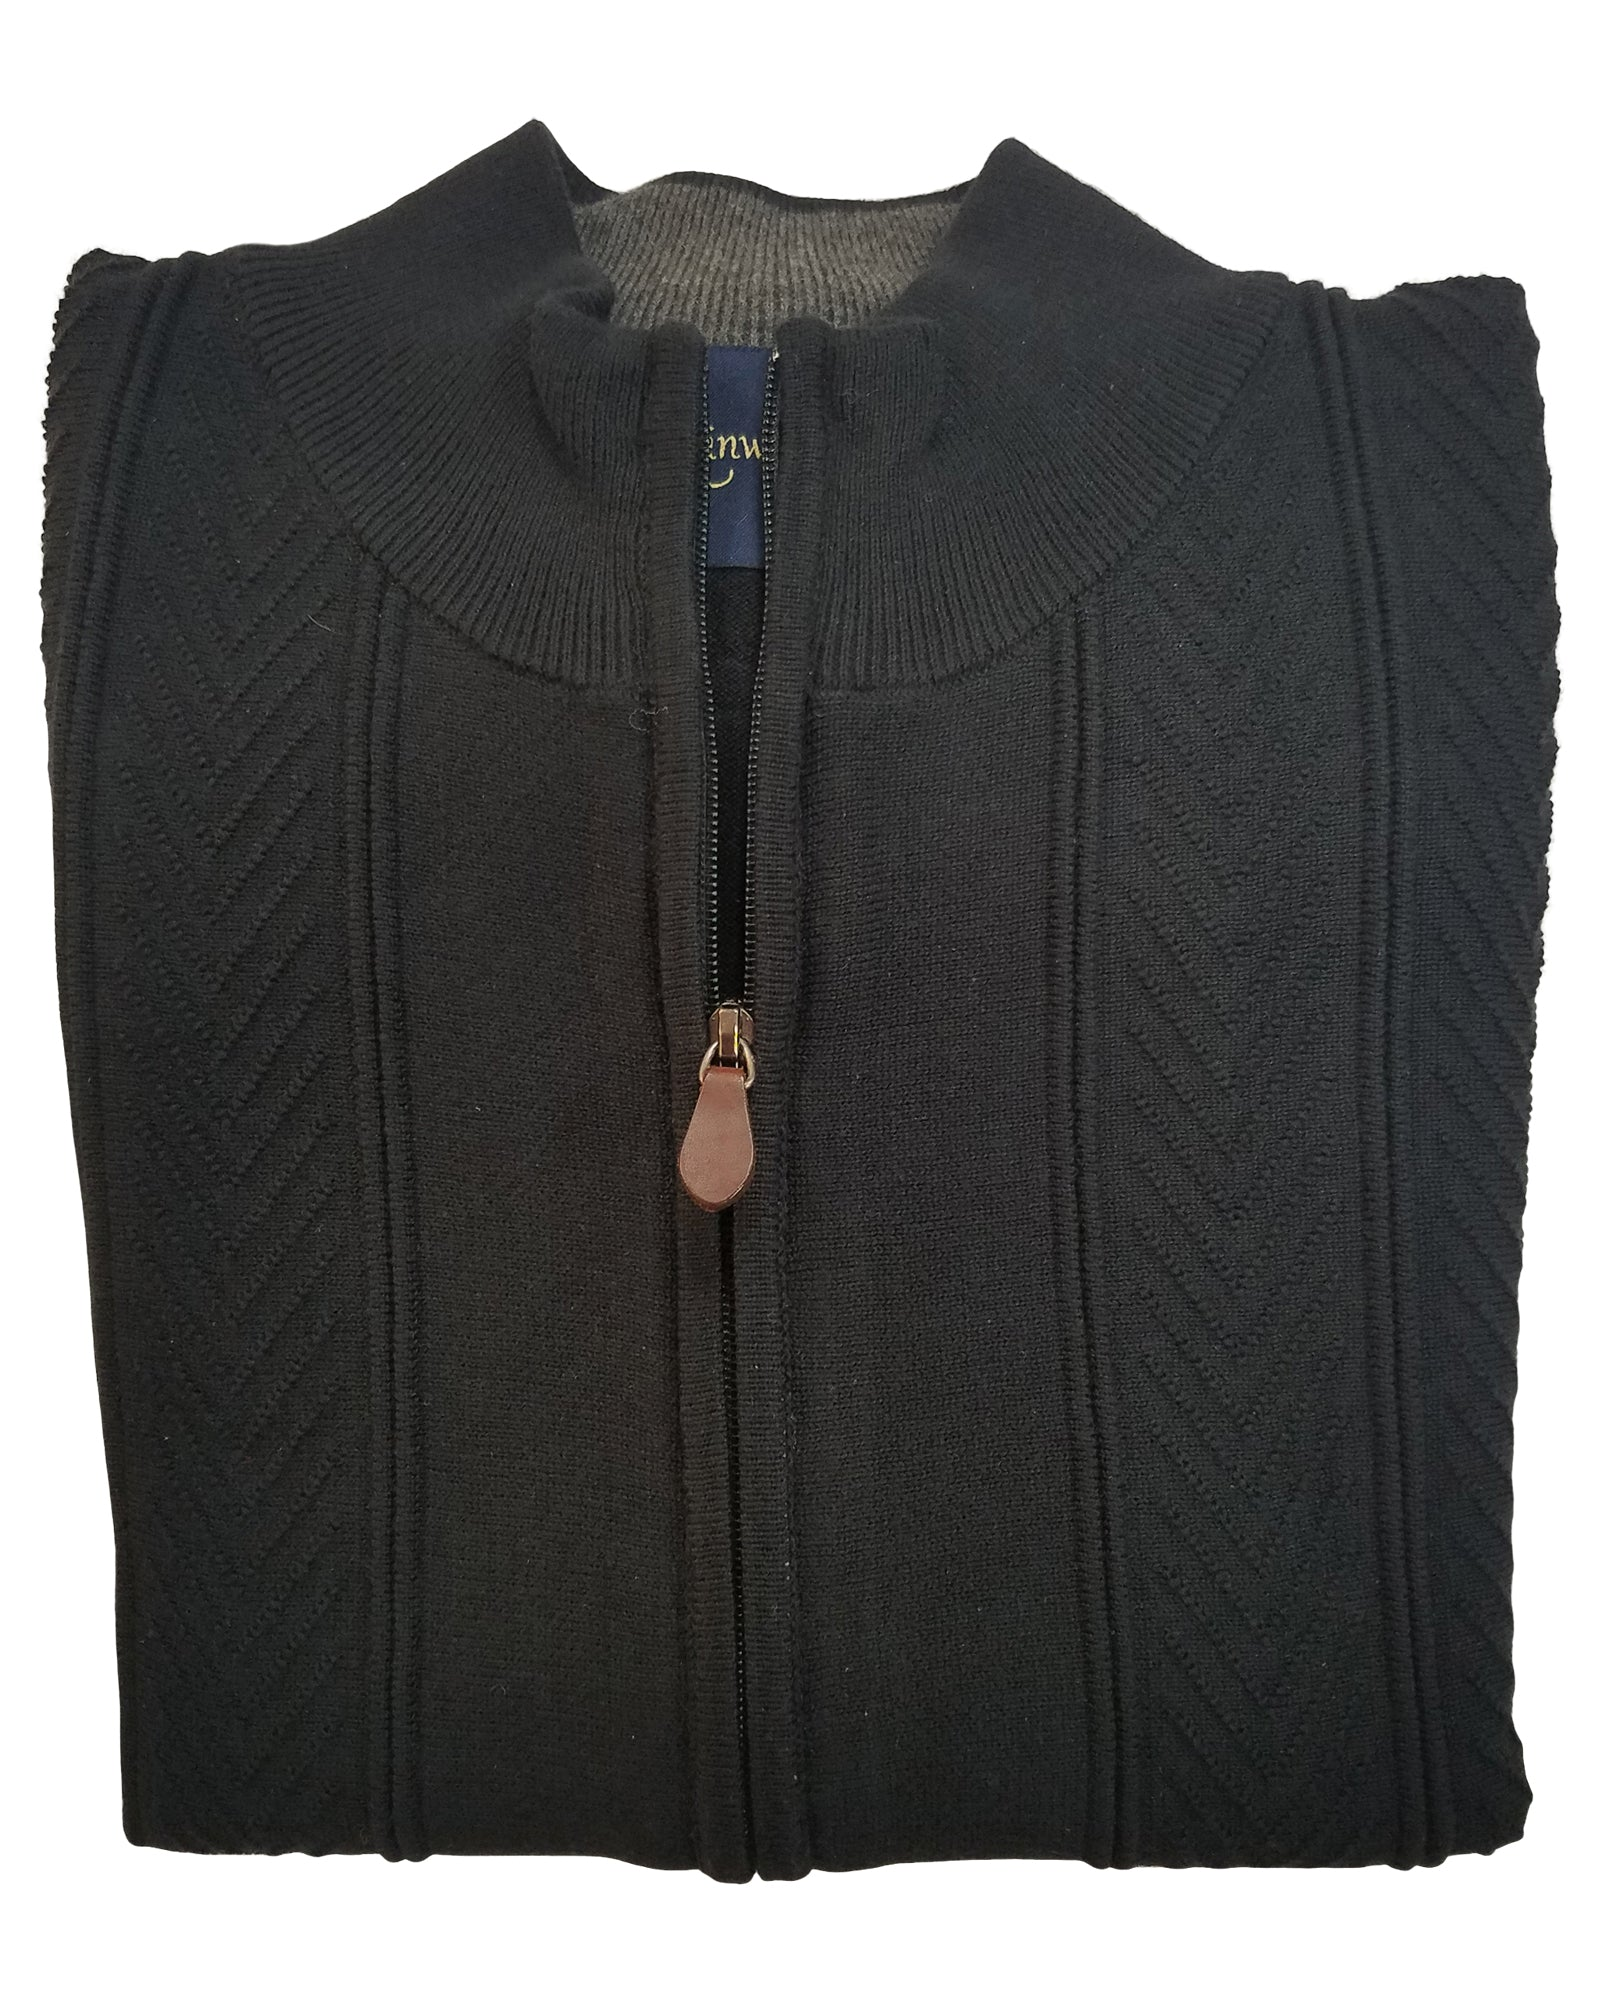 Zip Front Cardigan Sweater In Black Cotton Blend Cable Knit - Rainwater's Men's Clothing and Tuxedo Rental